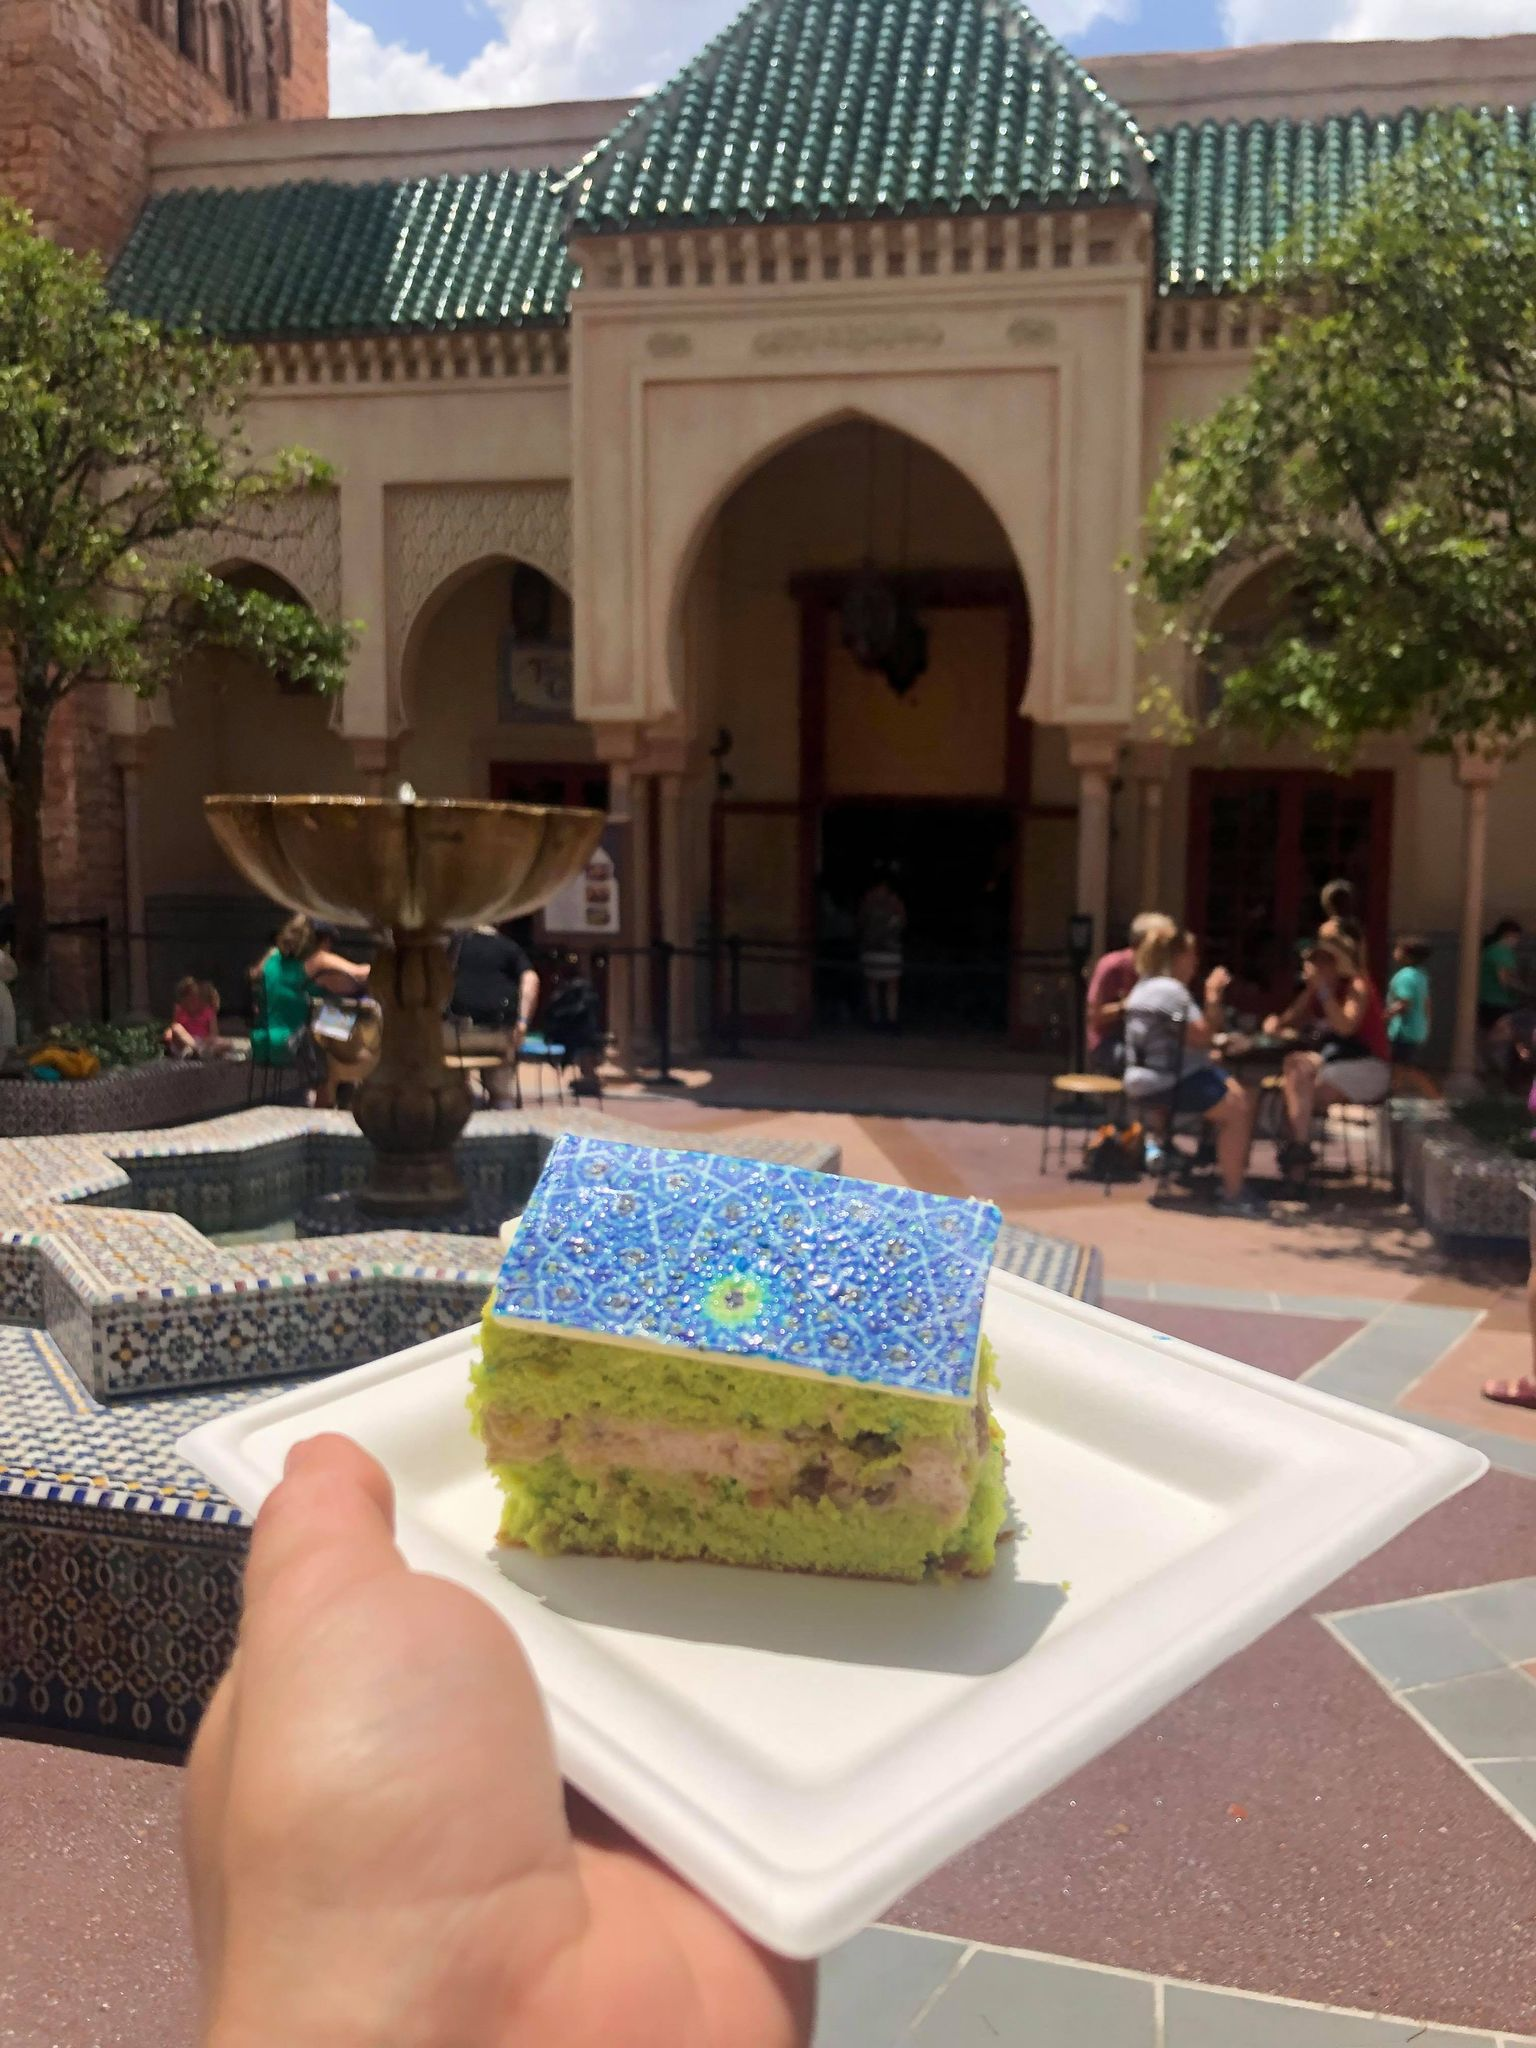 Tangierine Café: Flavors of the Medina Opens for Epcot Food & Wine Festival 9